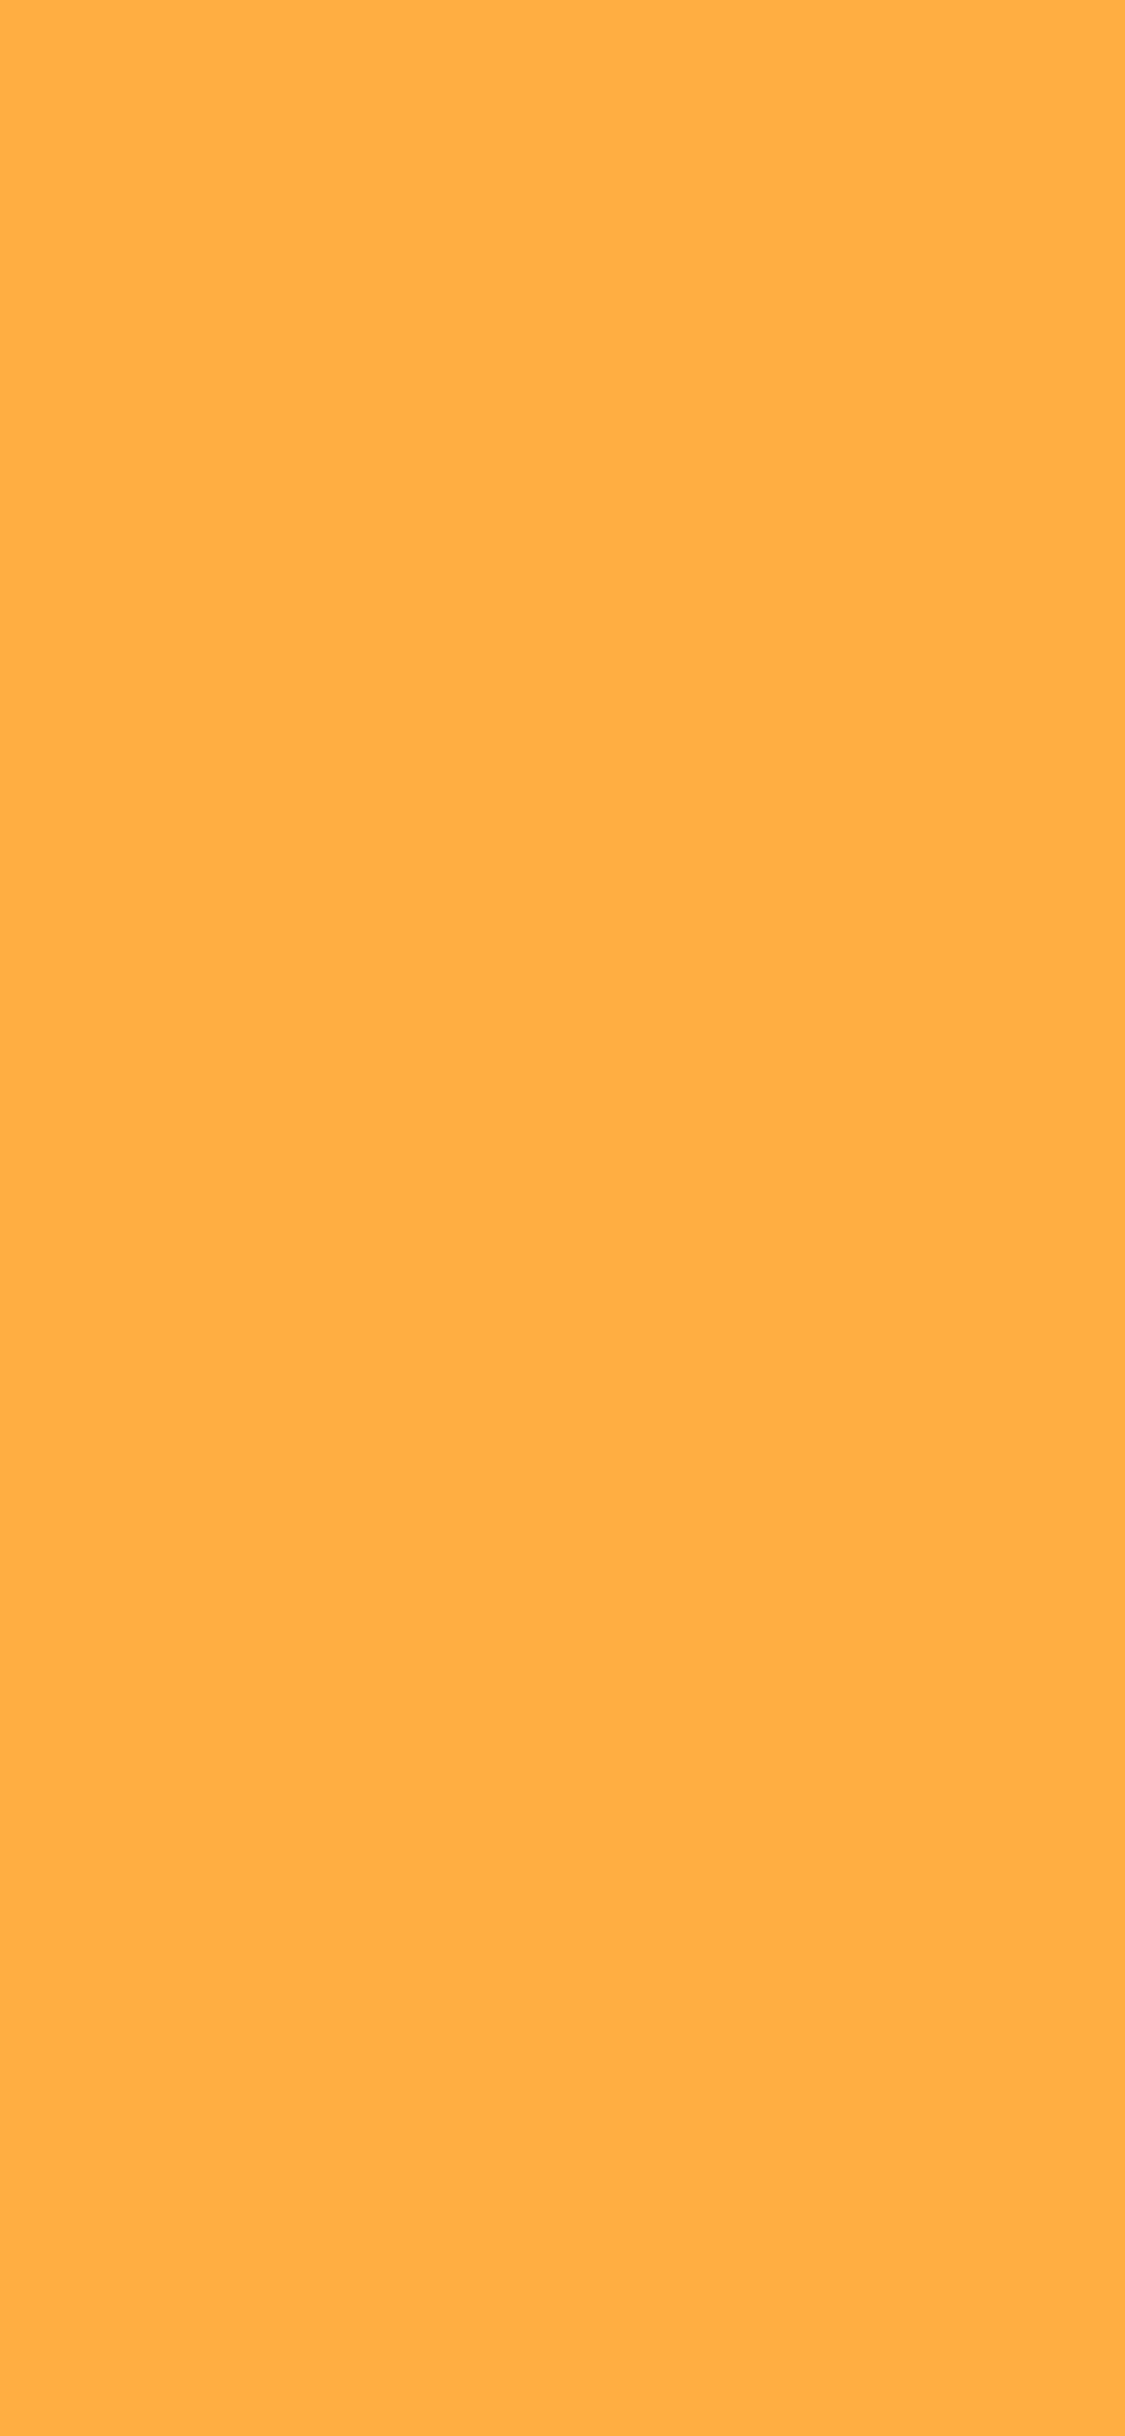 1125x2436 Yellow Orange Solid Color Background